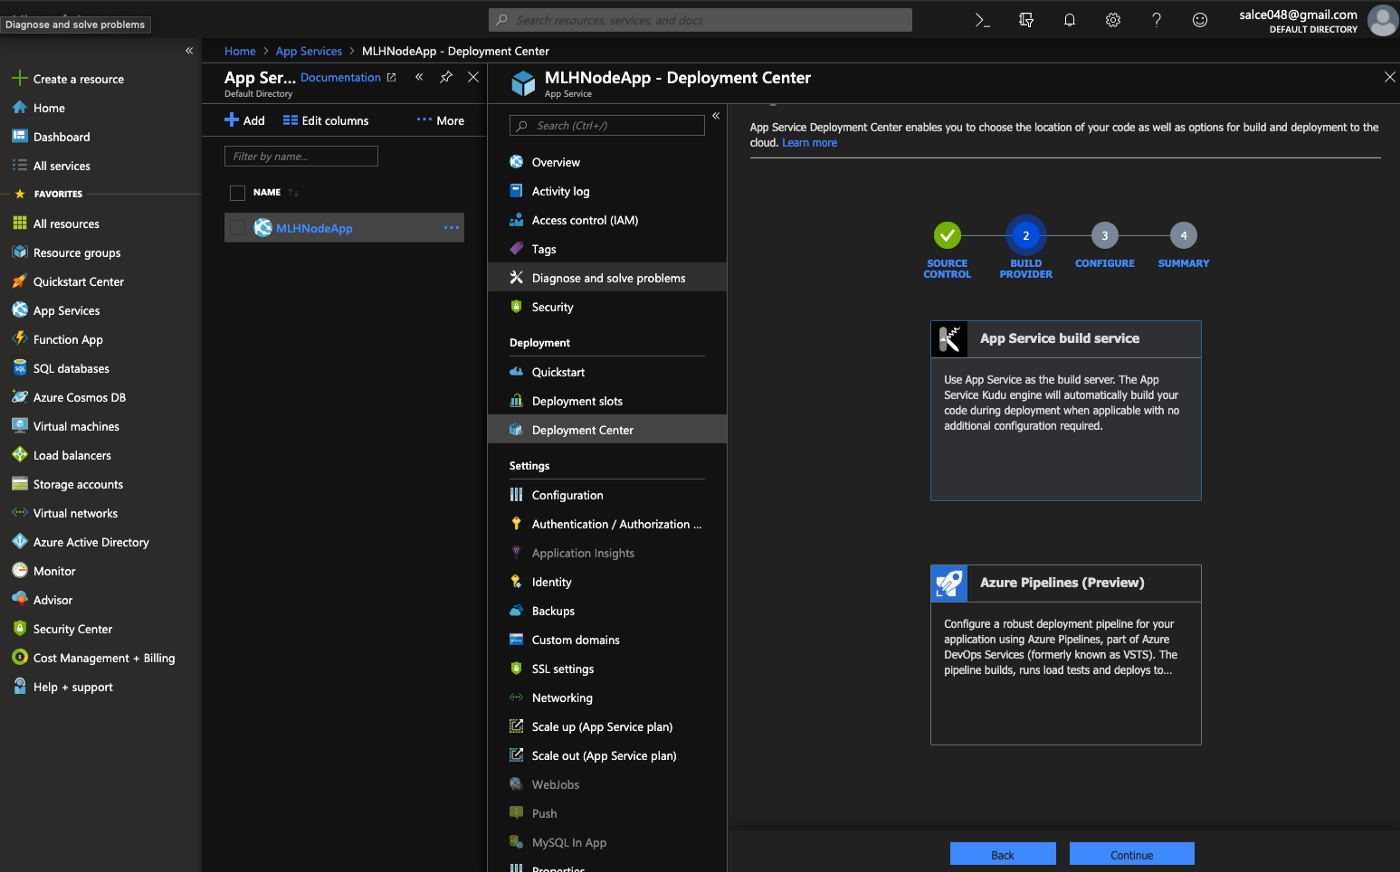 Configuring Continuous Deployment with GitHub through Azure App Services